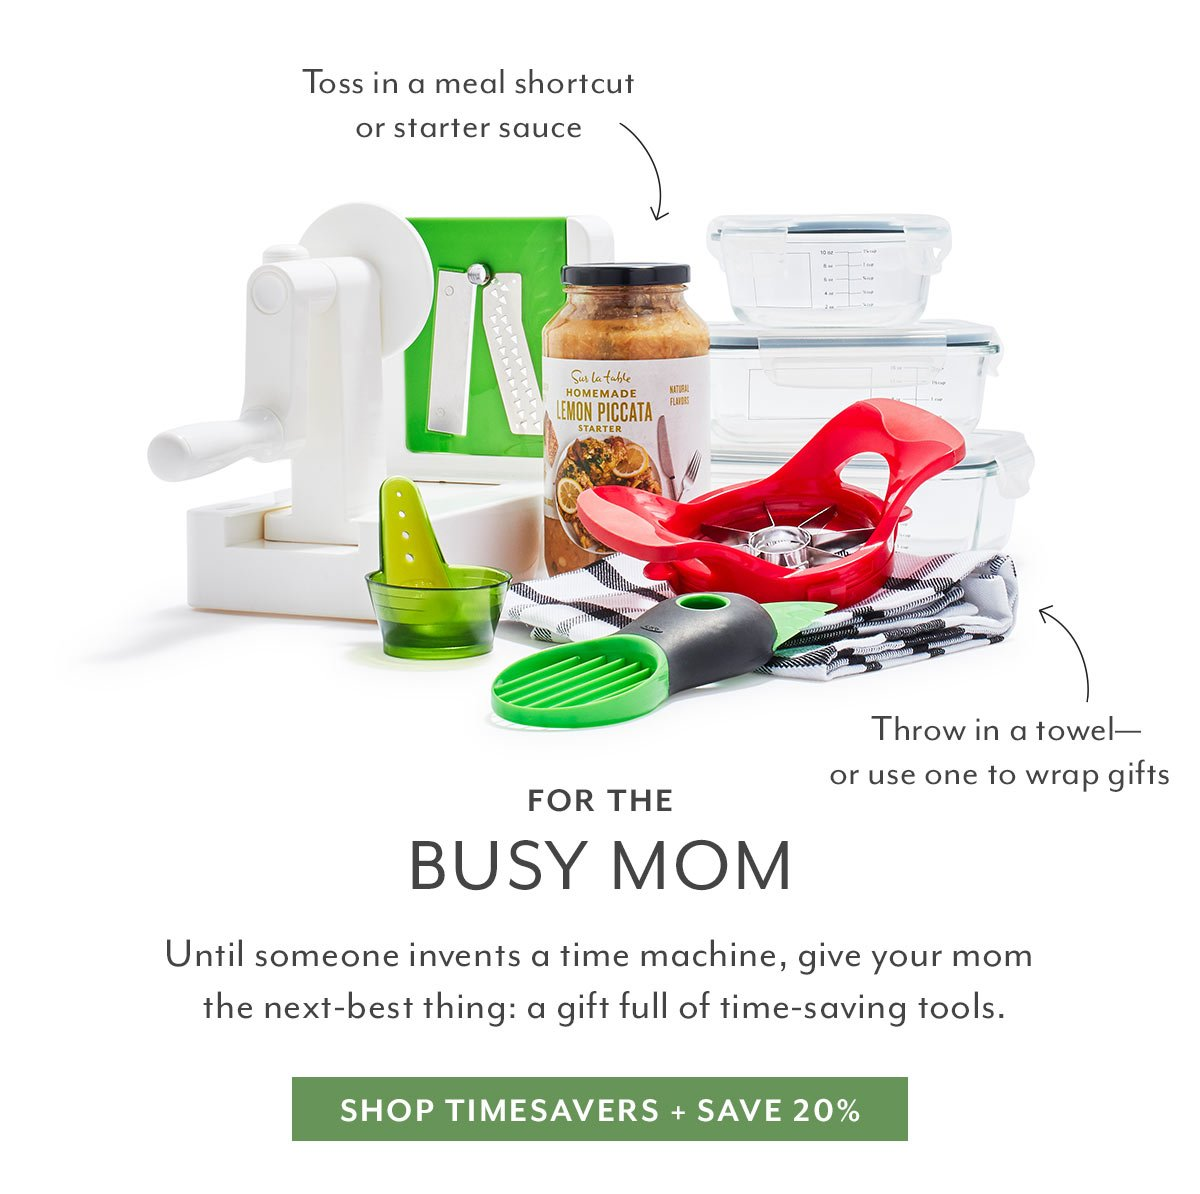 For the Busy Mom